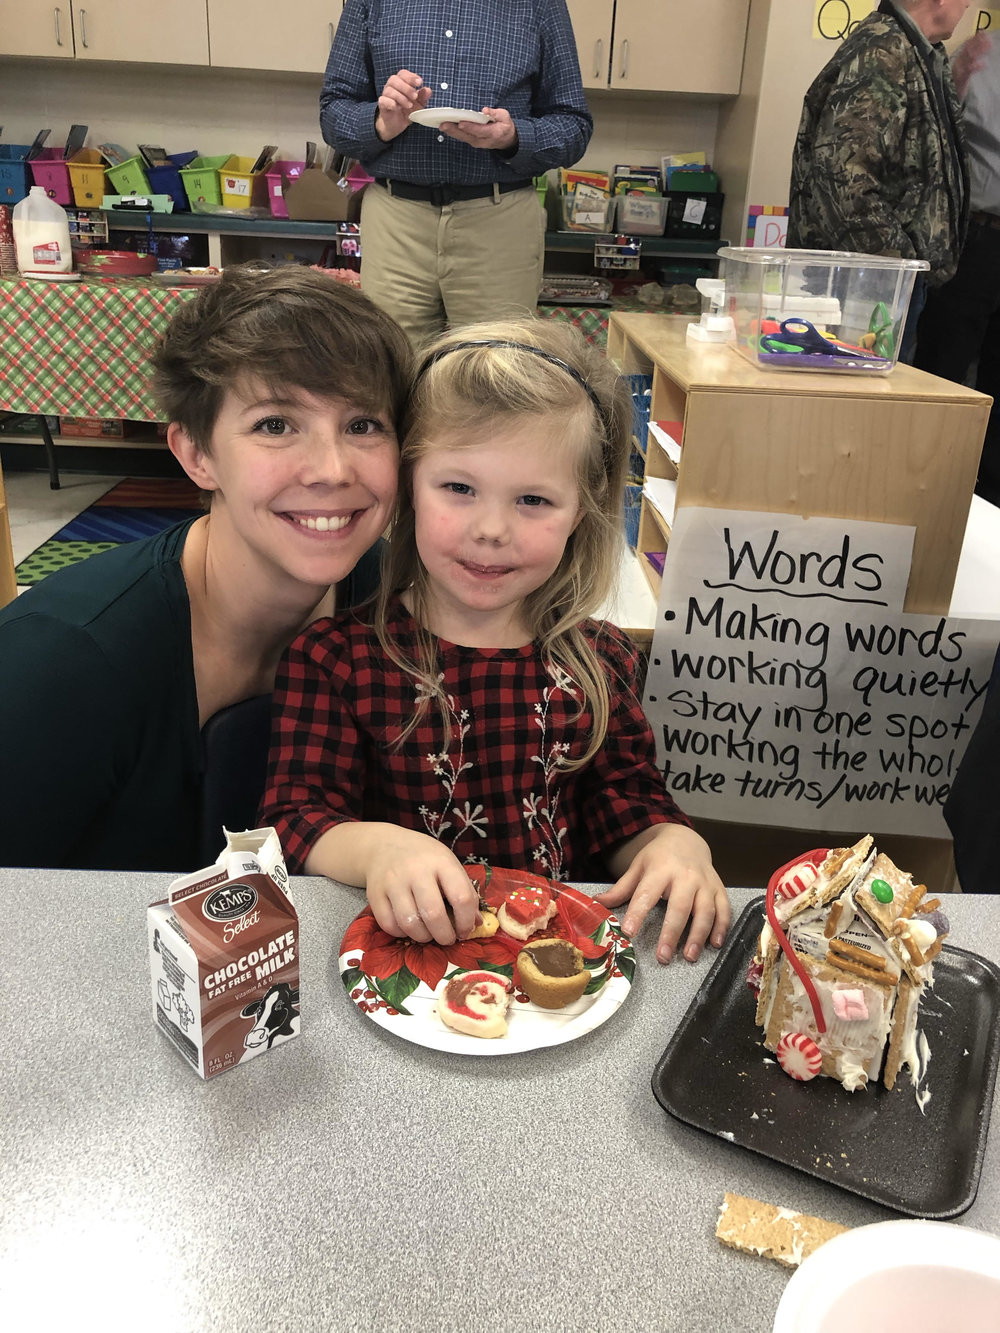 enjoying cookies after decorating gingerbread houses